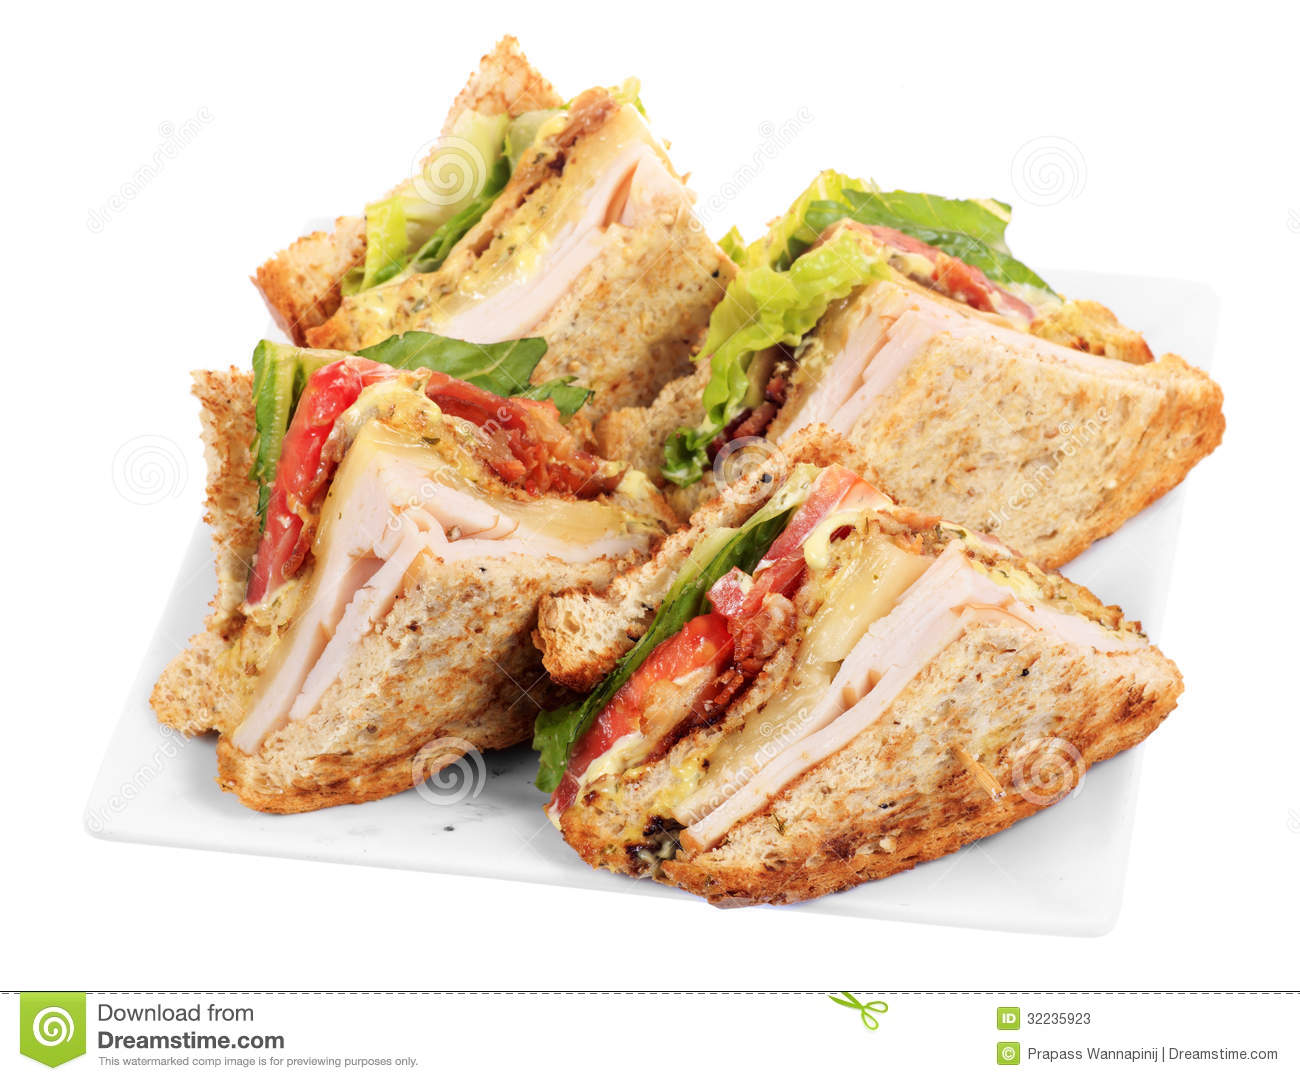 club sandwich lobster club sandwich cobb club sandwich classic club ...